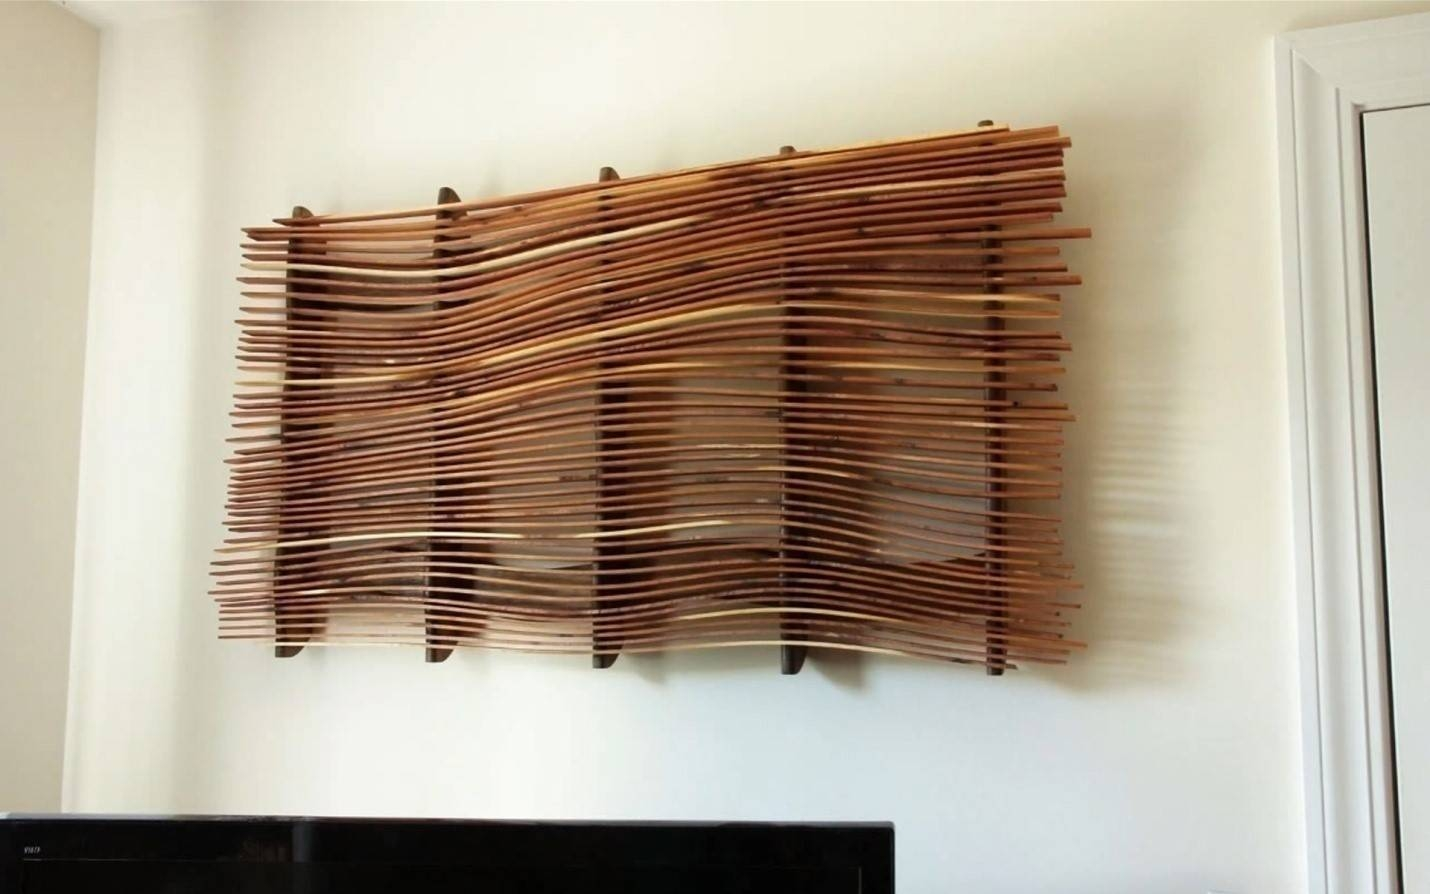 How To Make Wall Art From Scrap Wood | Diy Project | Cut The Wood Throughout Most Recently Released Scrap Metal Wall Art (View 6 of 20)